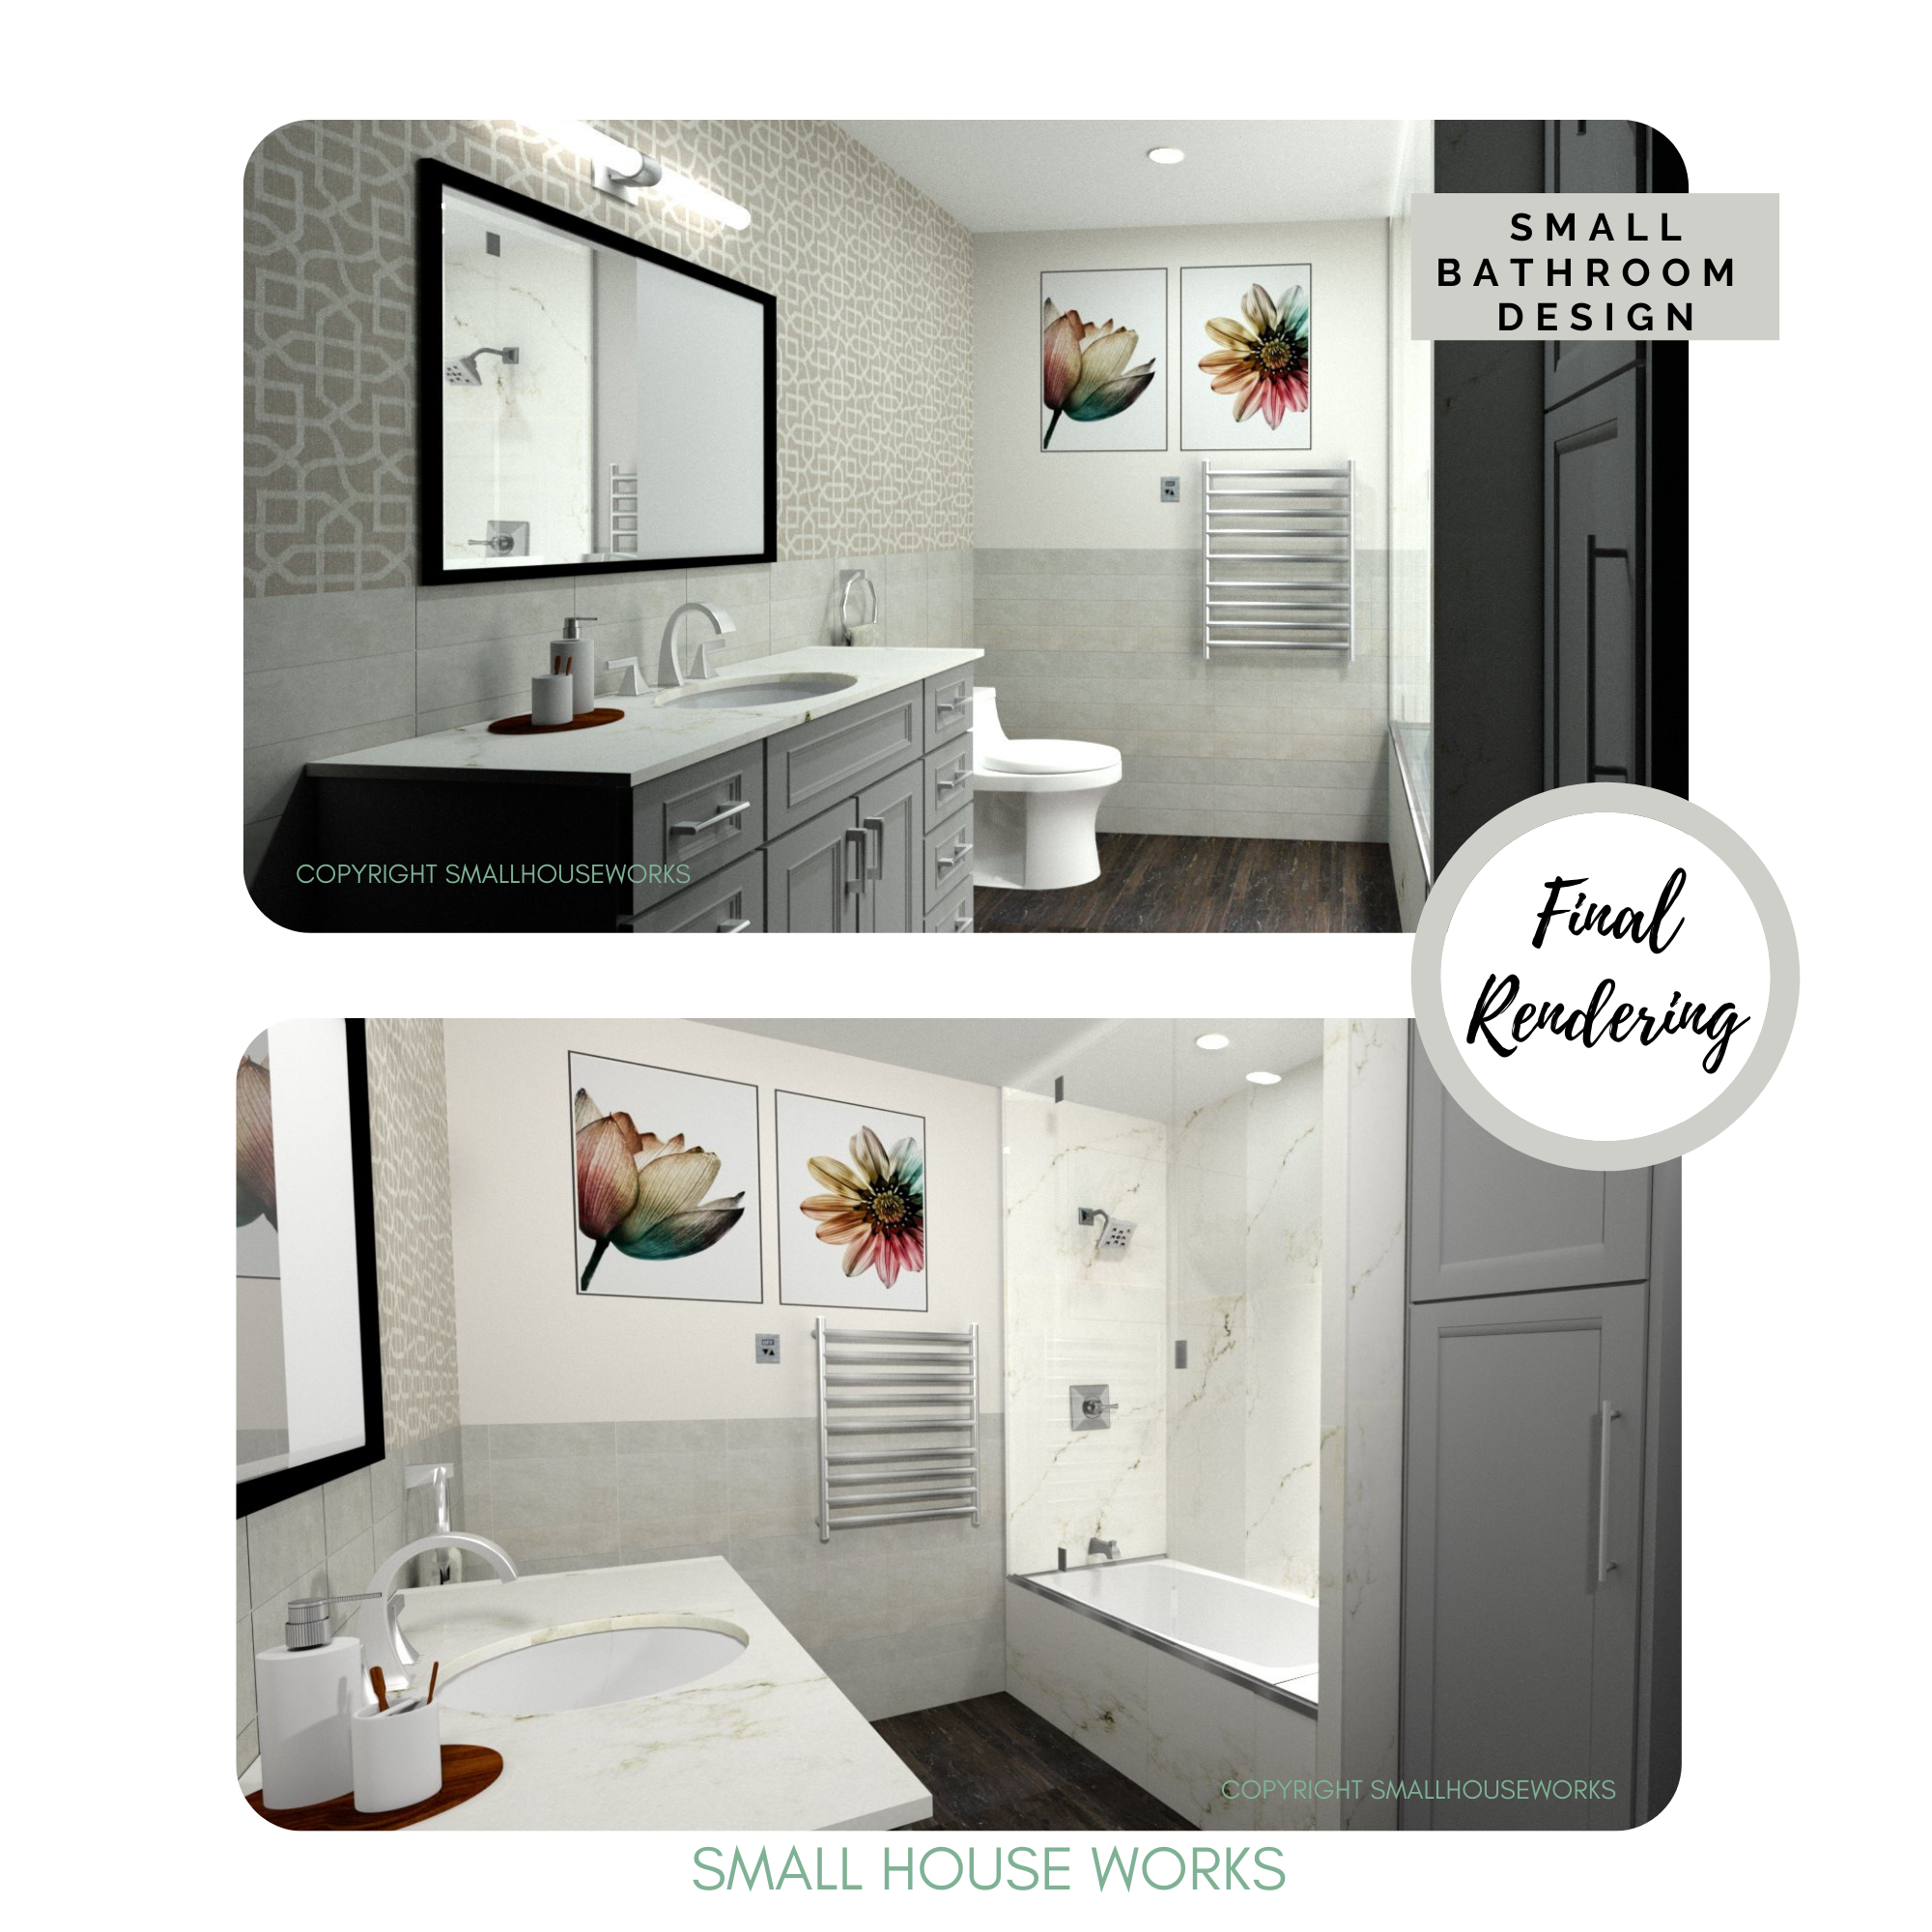 AFTER-SMALL BATHROOM